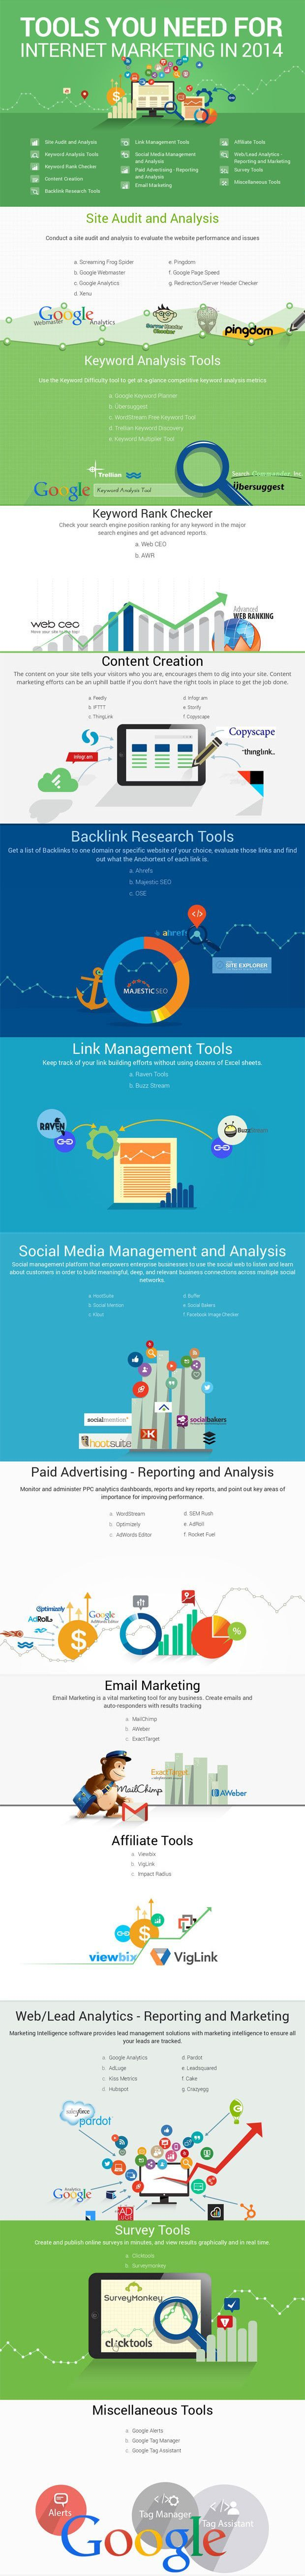 Visualistan: Tools You Need For Internet Marketing In 2014 #infographic